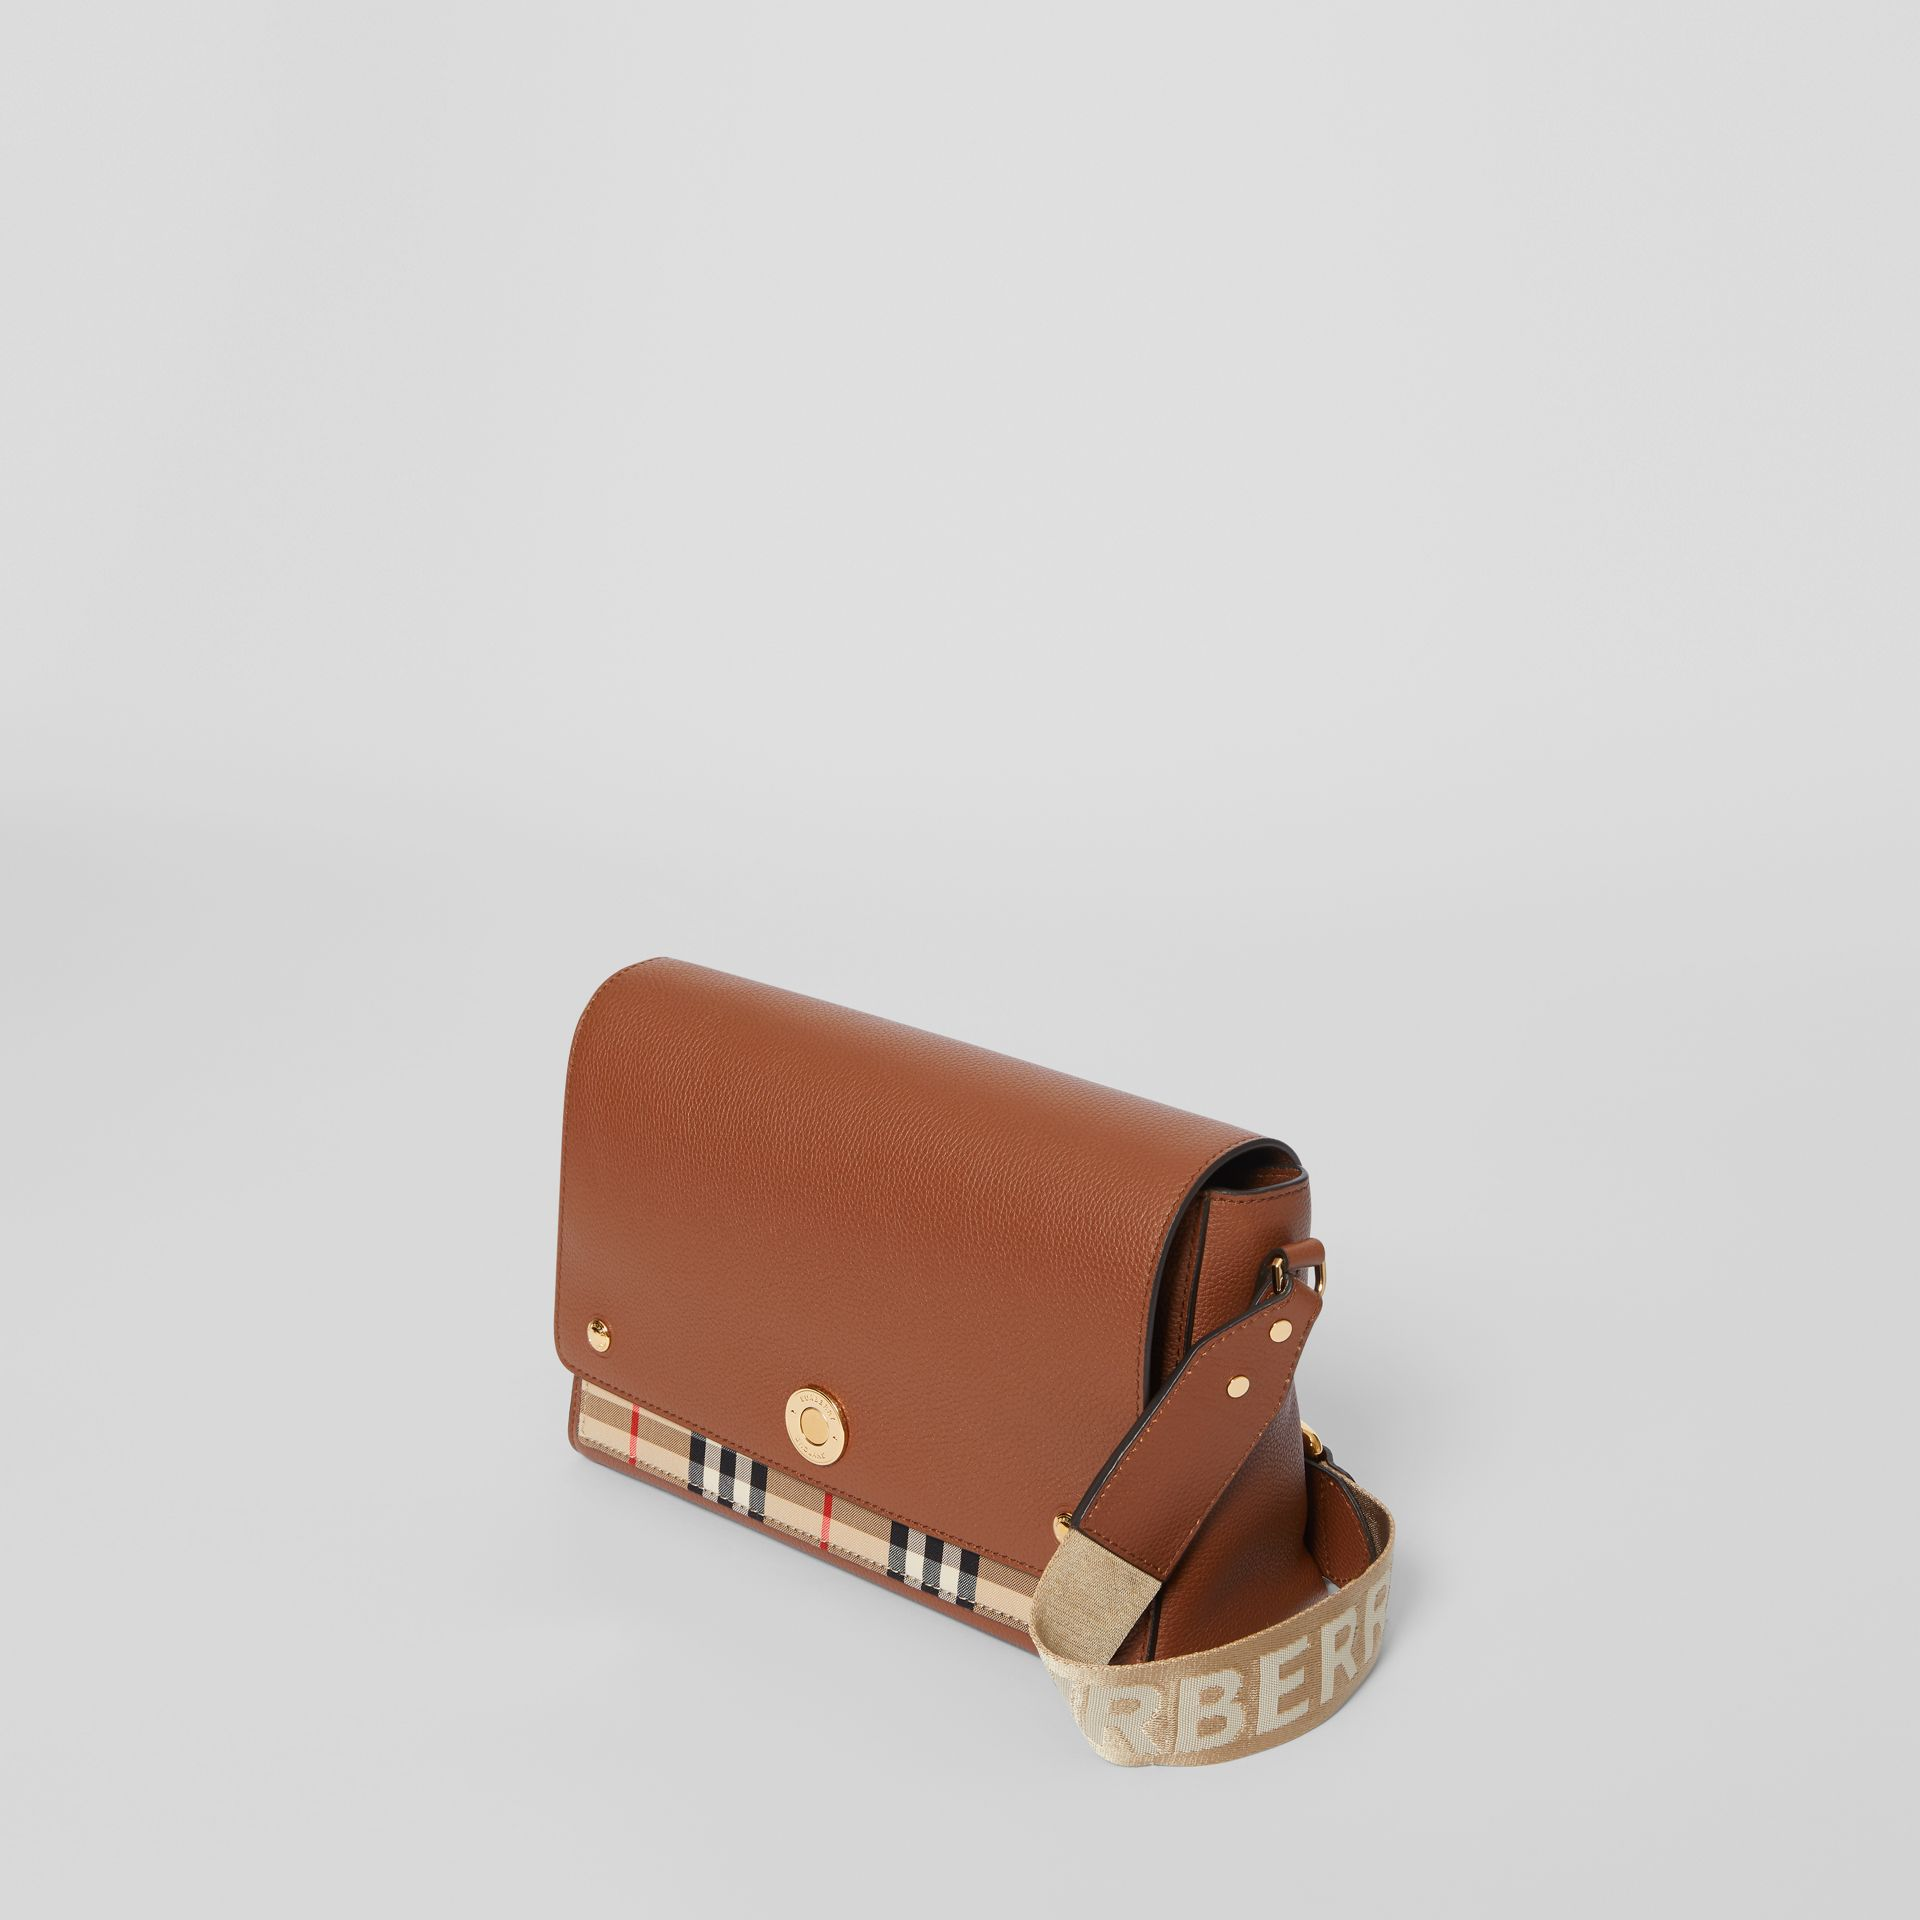 Leather and Vintage Check Note Crossbody Bag in Tan - Women | Burberry - gallery image 3